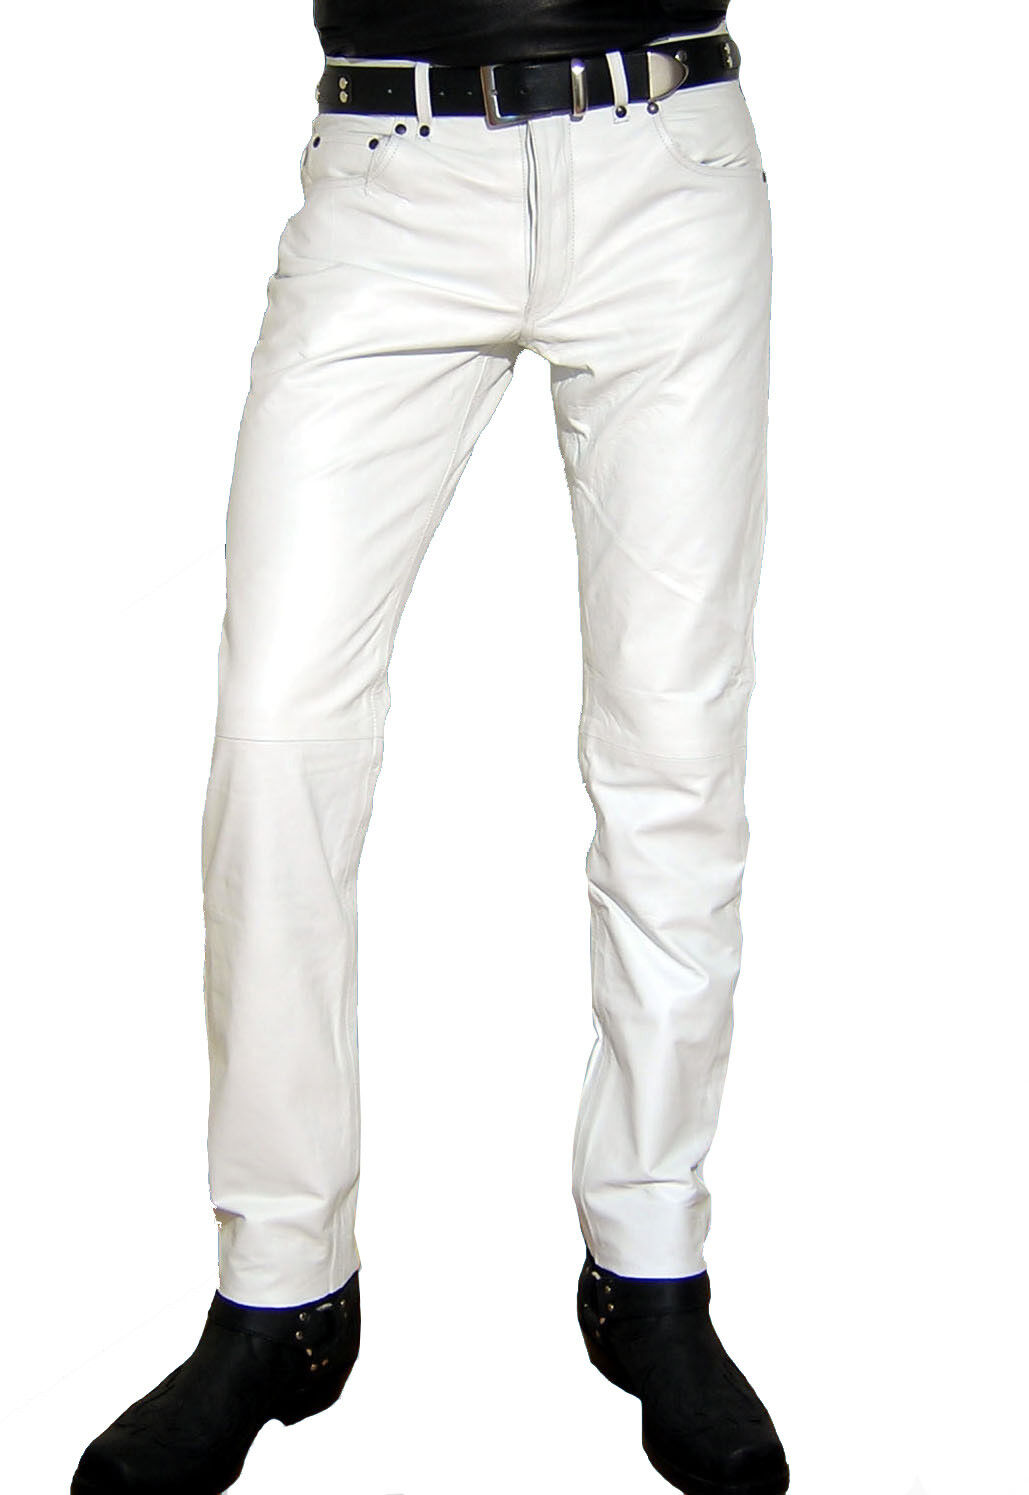 Mens leather jeans white leather pants new leather trousers  Lederjeans white